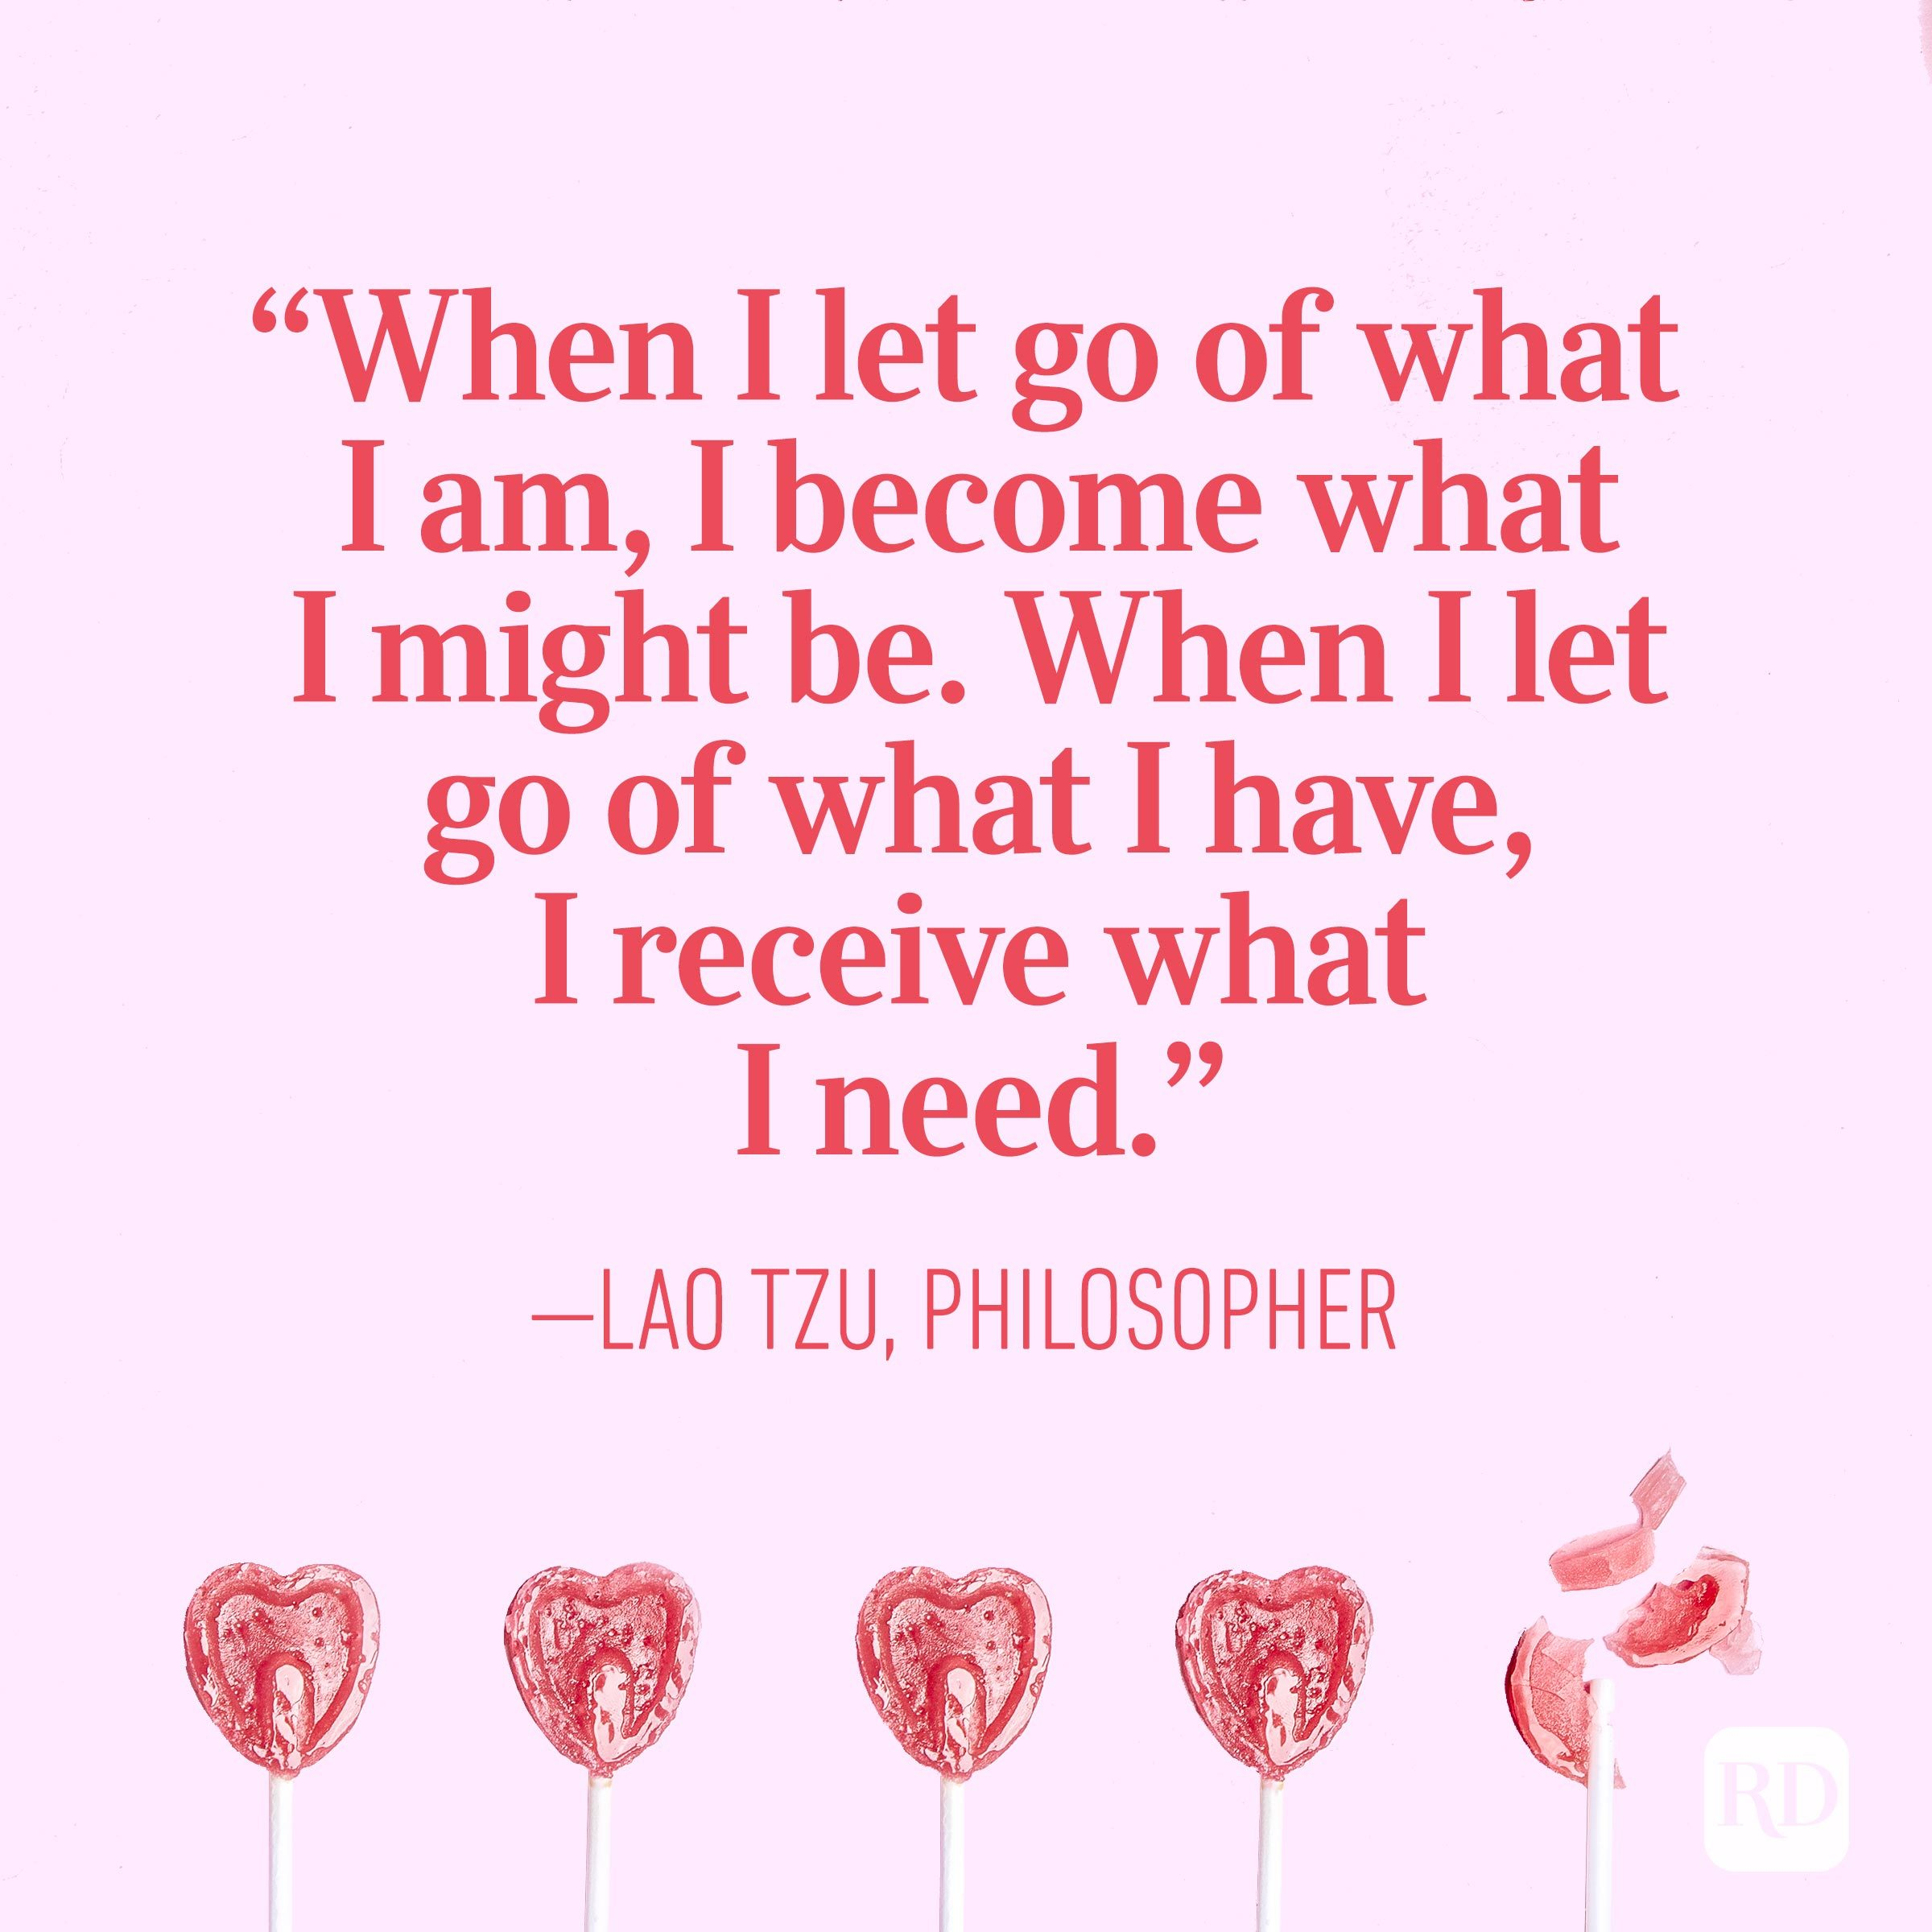 """When I let go of what I am, I become what I might be. When I let go of what I have, I receive what I need."" – Lao Tzu, philosopher"